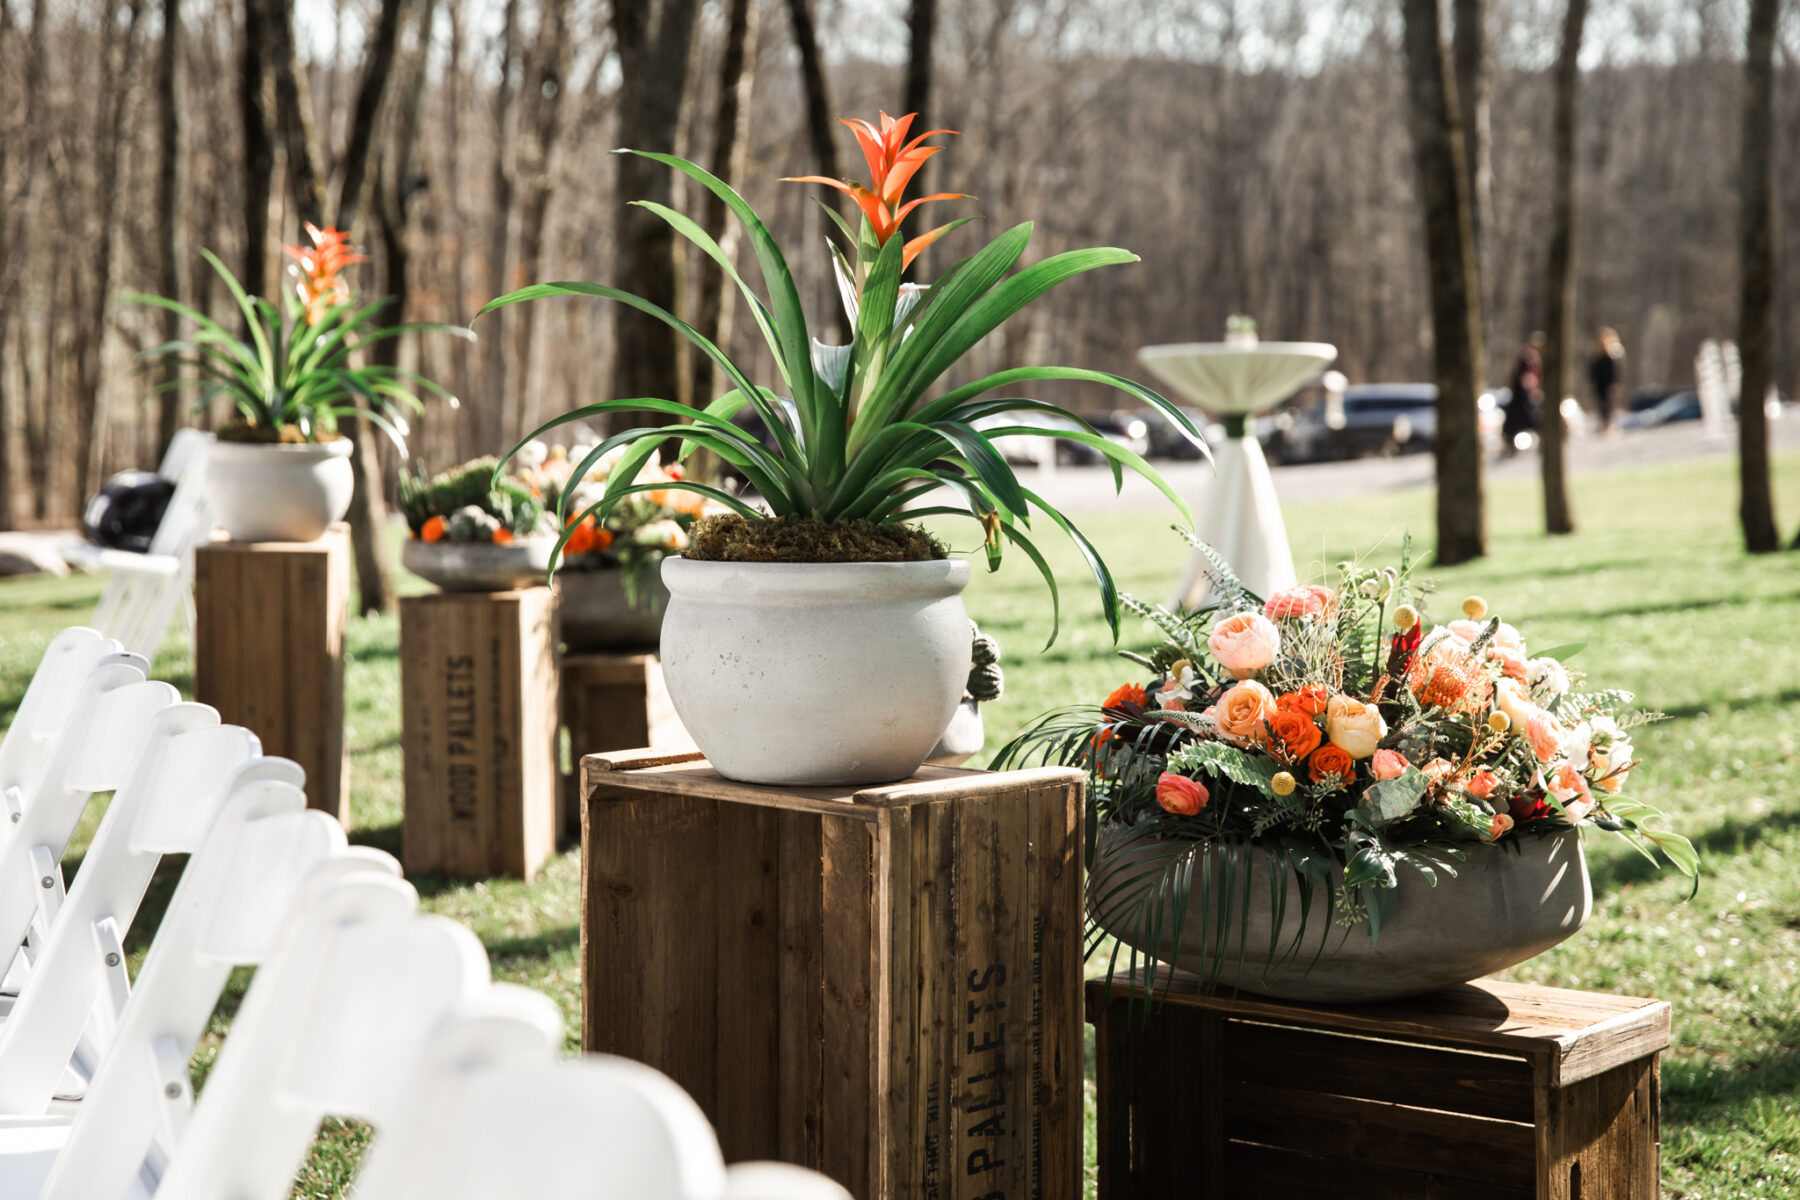 Wedding ceremony flowers decor: Western Inspired Wedding by Laurie D'Anne Events featured on Nashville Bride Guide